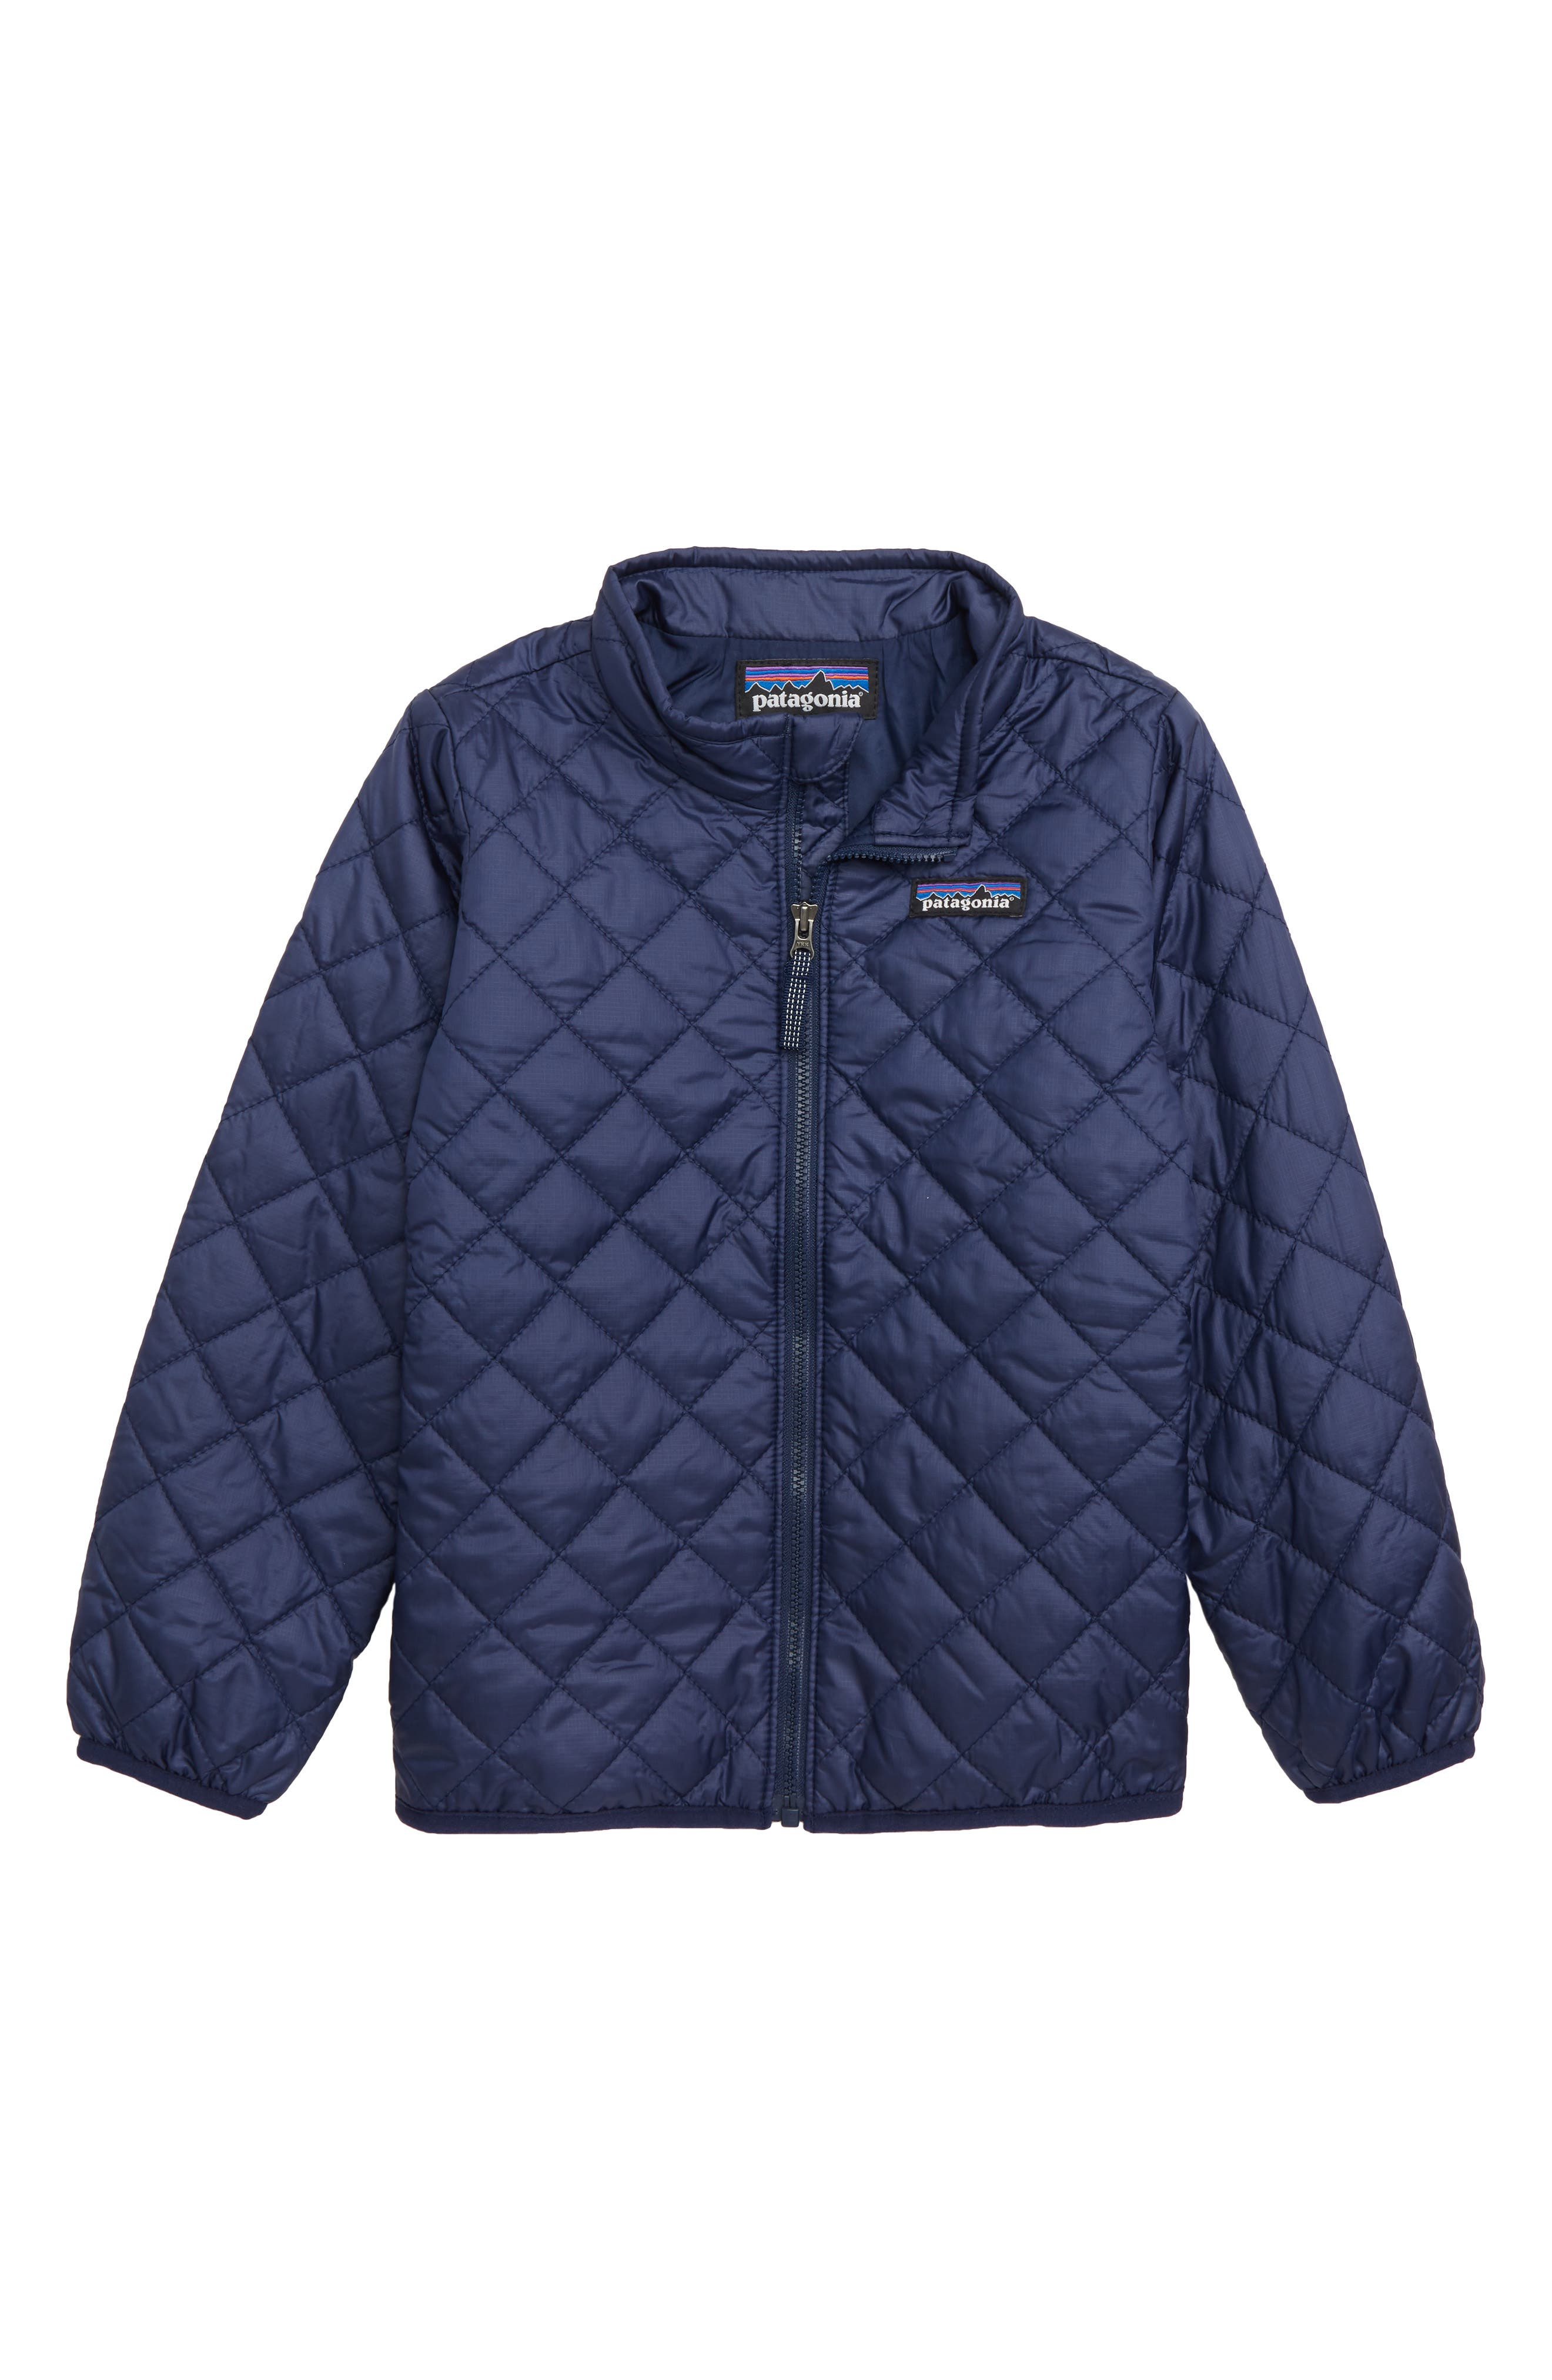 Toddler Boys Patagonia Nano Puff Quilted Water Resistant Jacket Size 5T  Blue